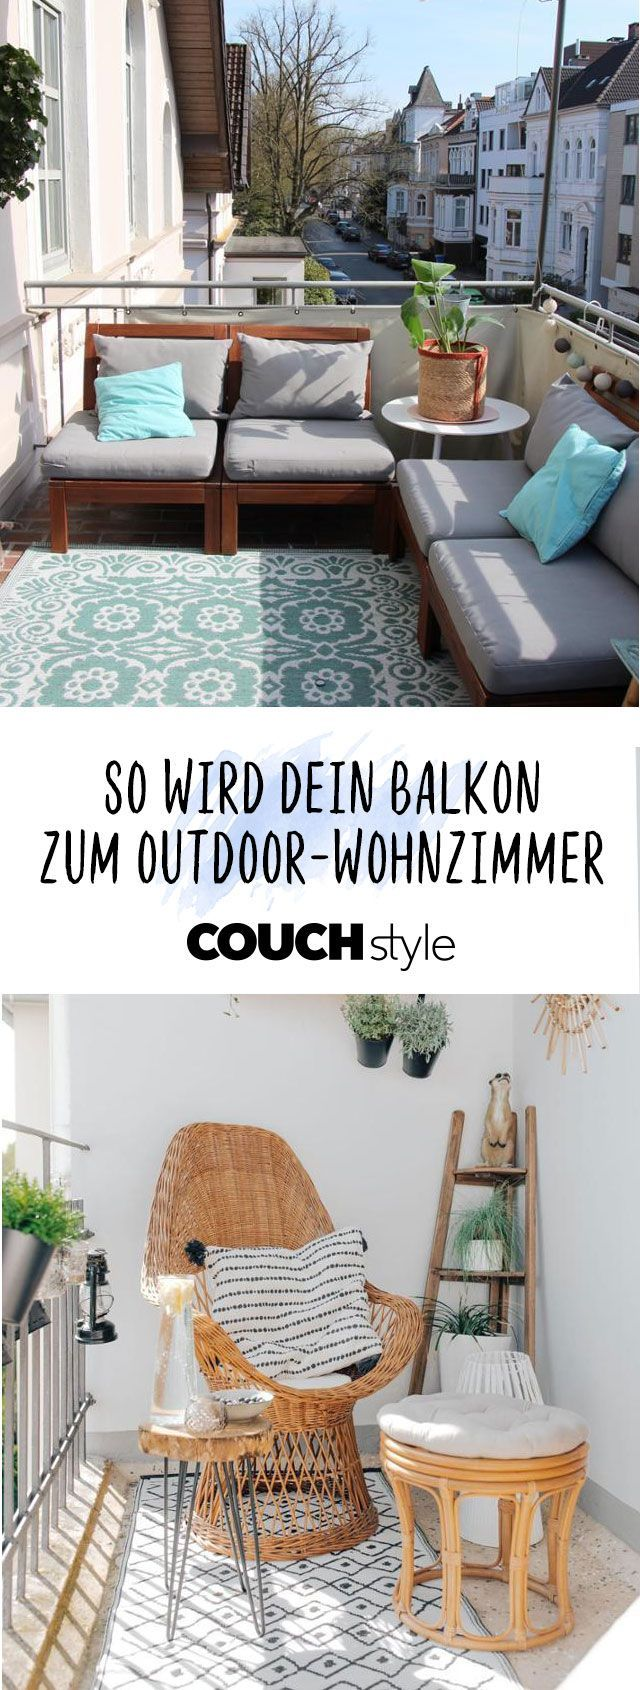 So your balcony becomes an outdoor living room: we'll show you how to make your balcony ...